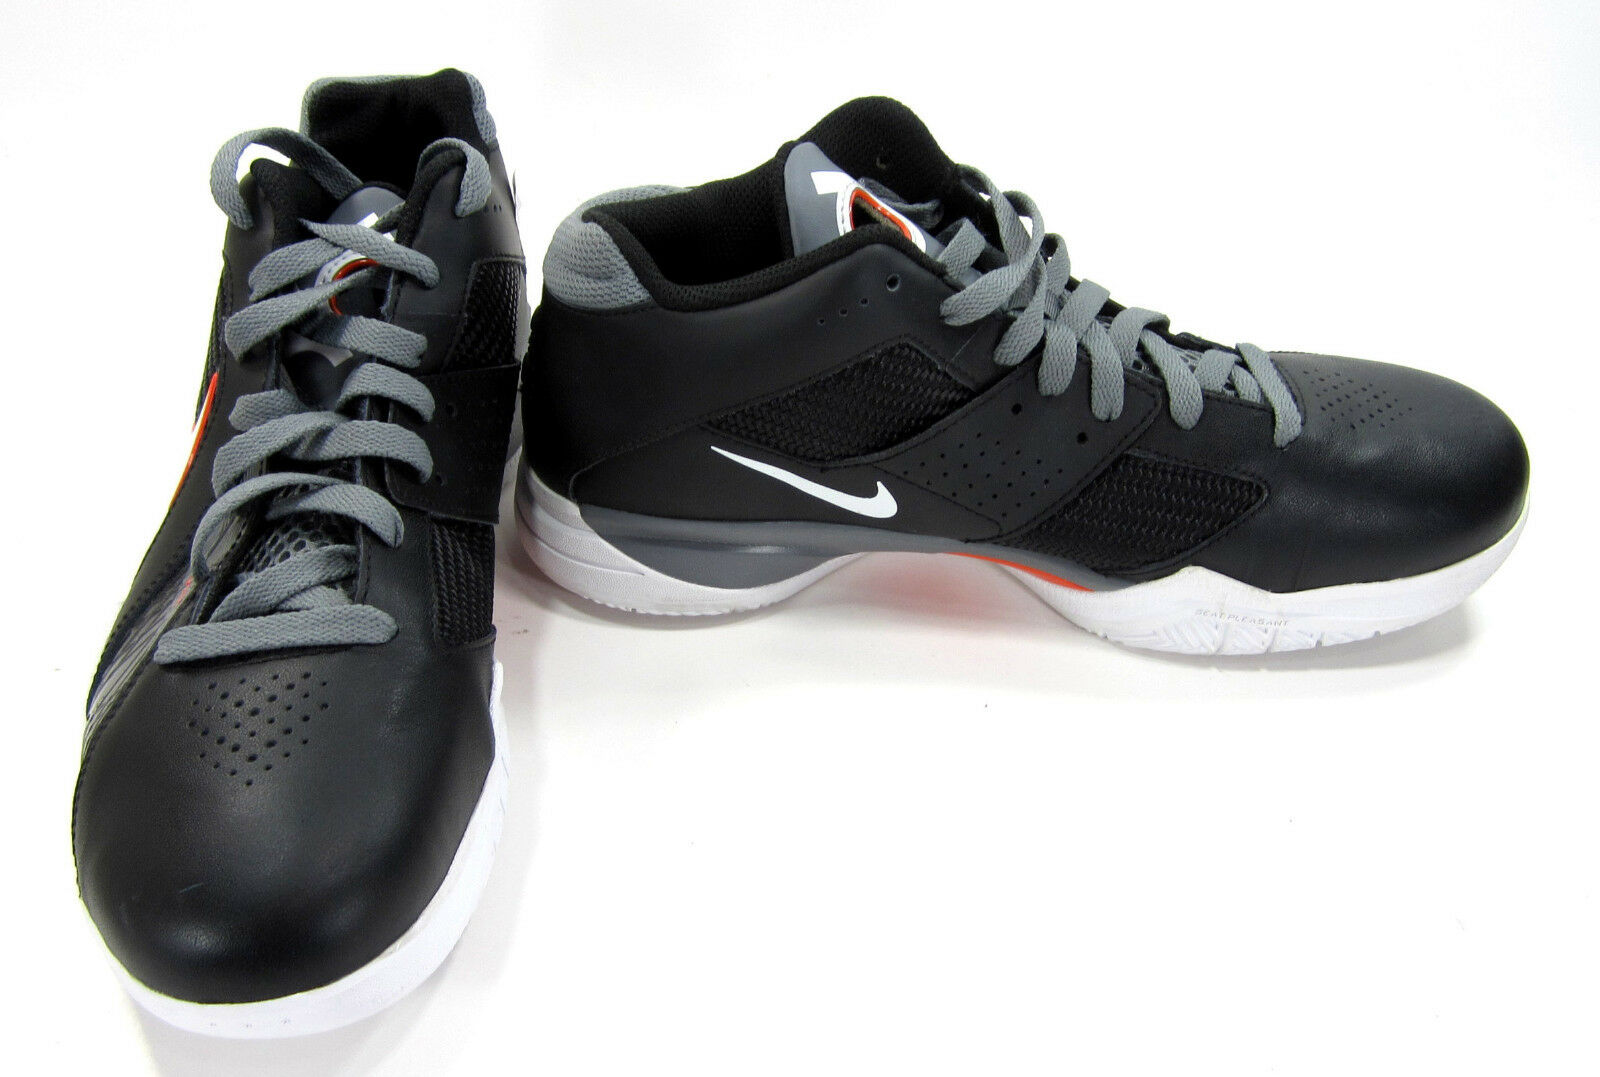 Nike Shoes Zoom Kd Iii X Black/Gray/White Sneakers Comfortable New shoes for men and women, limited time discount